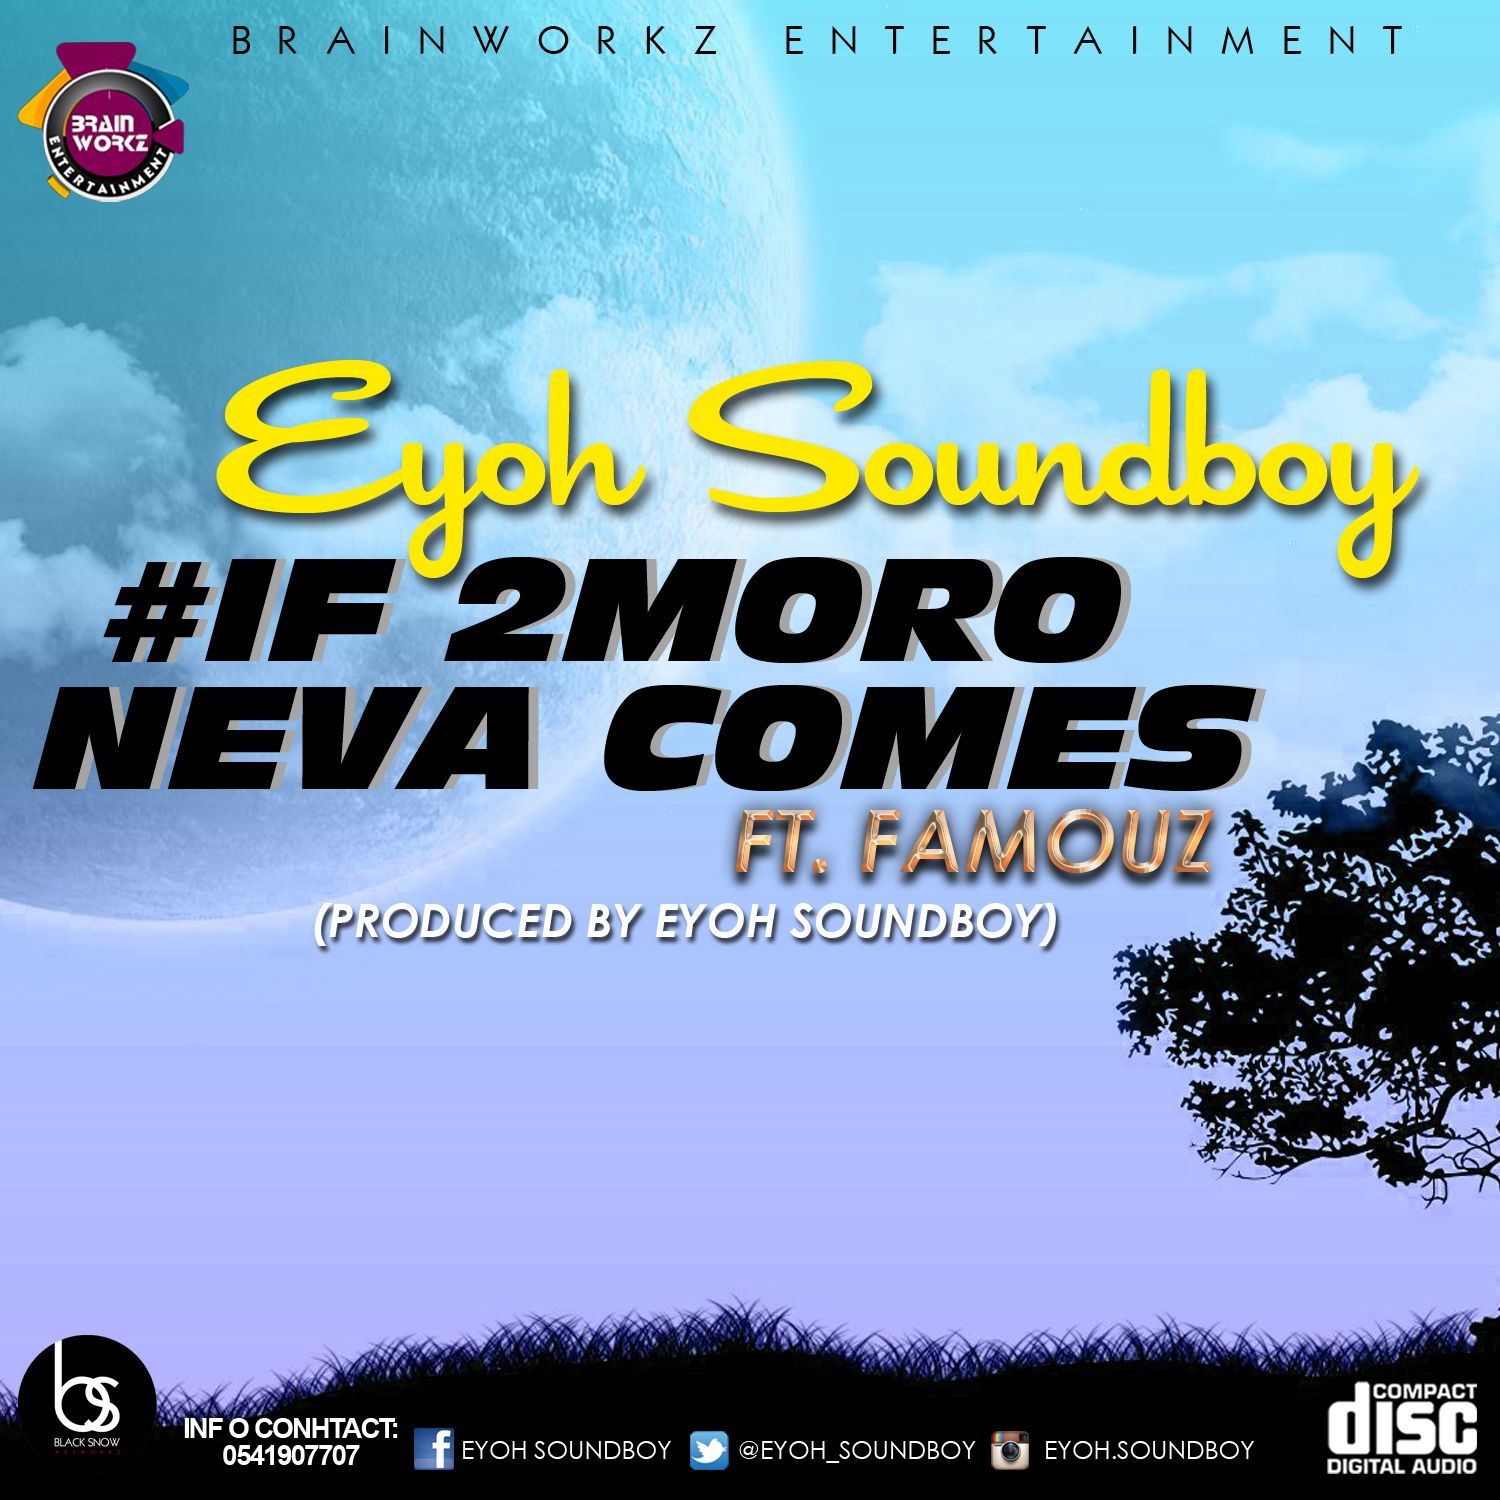 Eyoh Soundboy If moro Neva Comes feat